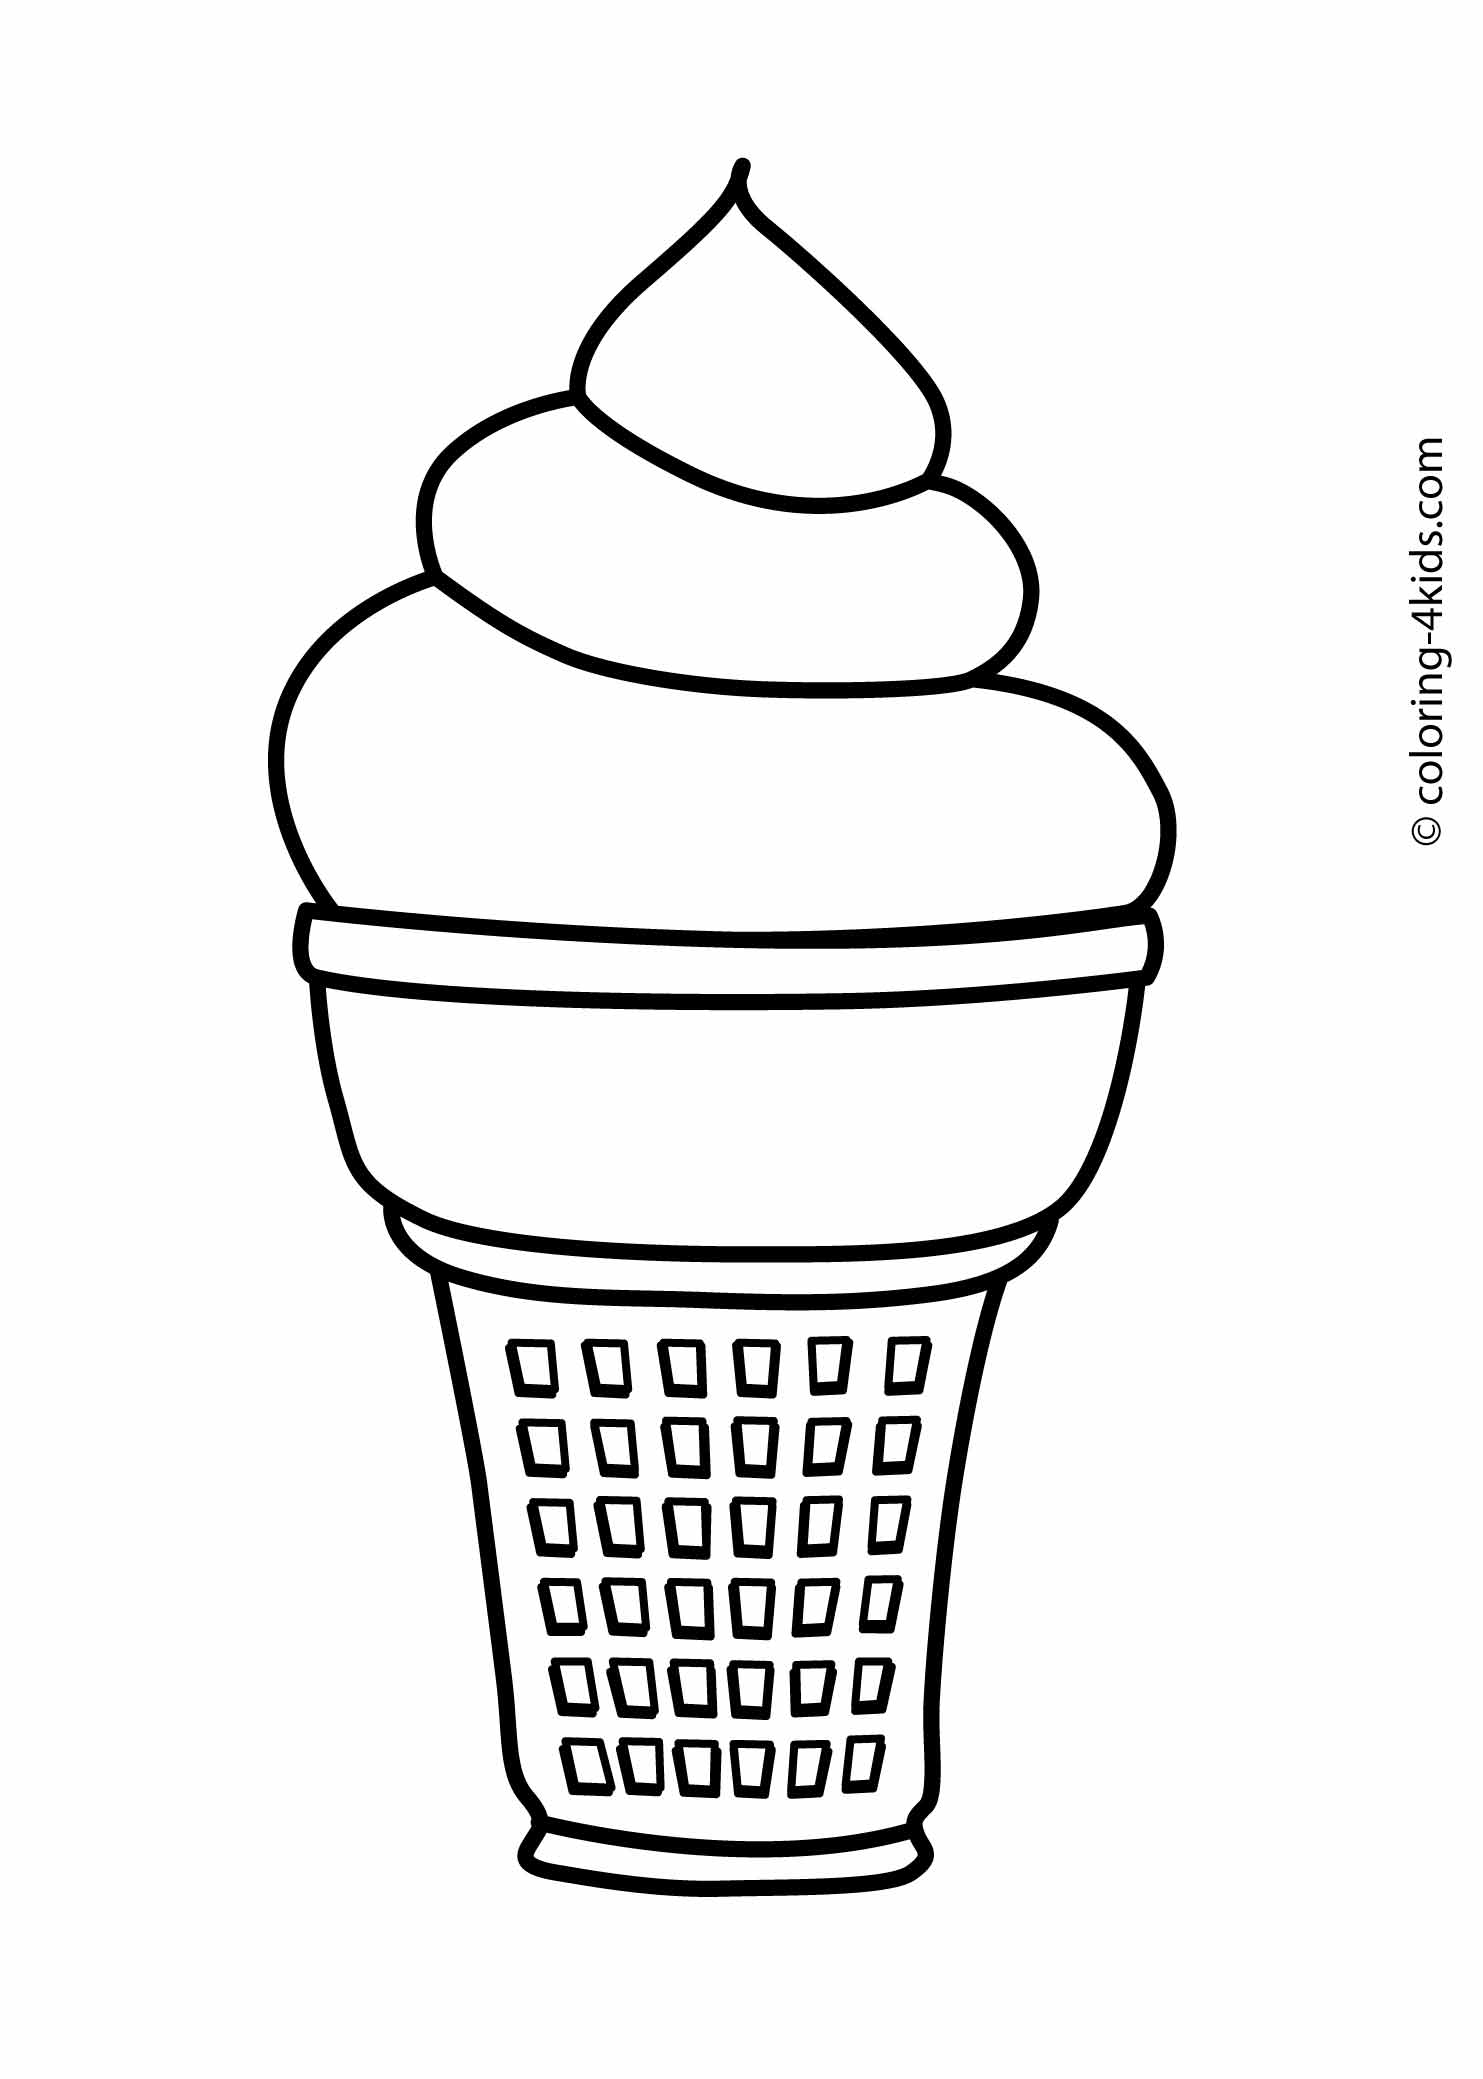 ice cream coloring pages free ice cream coloring pages free cream coloring free ice pages